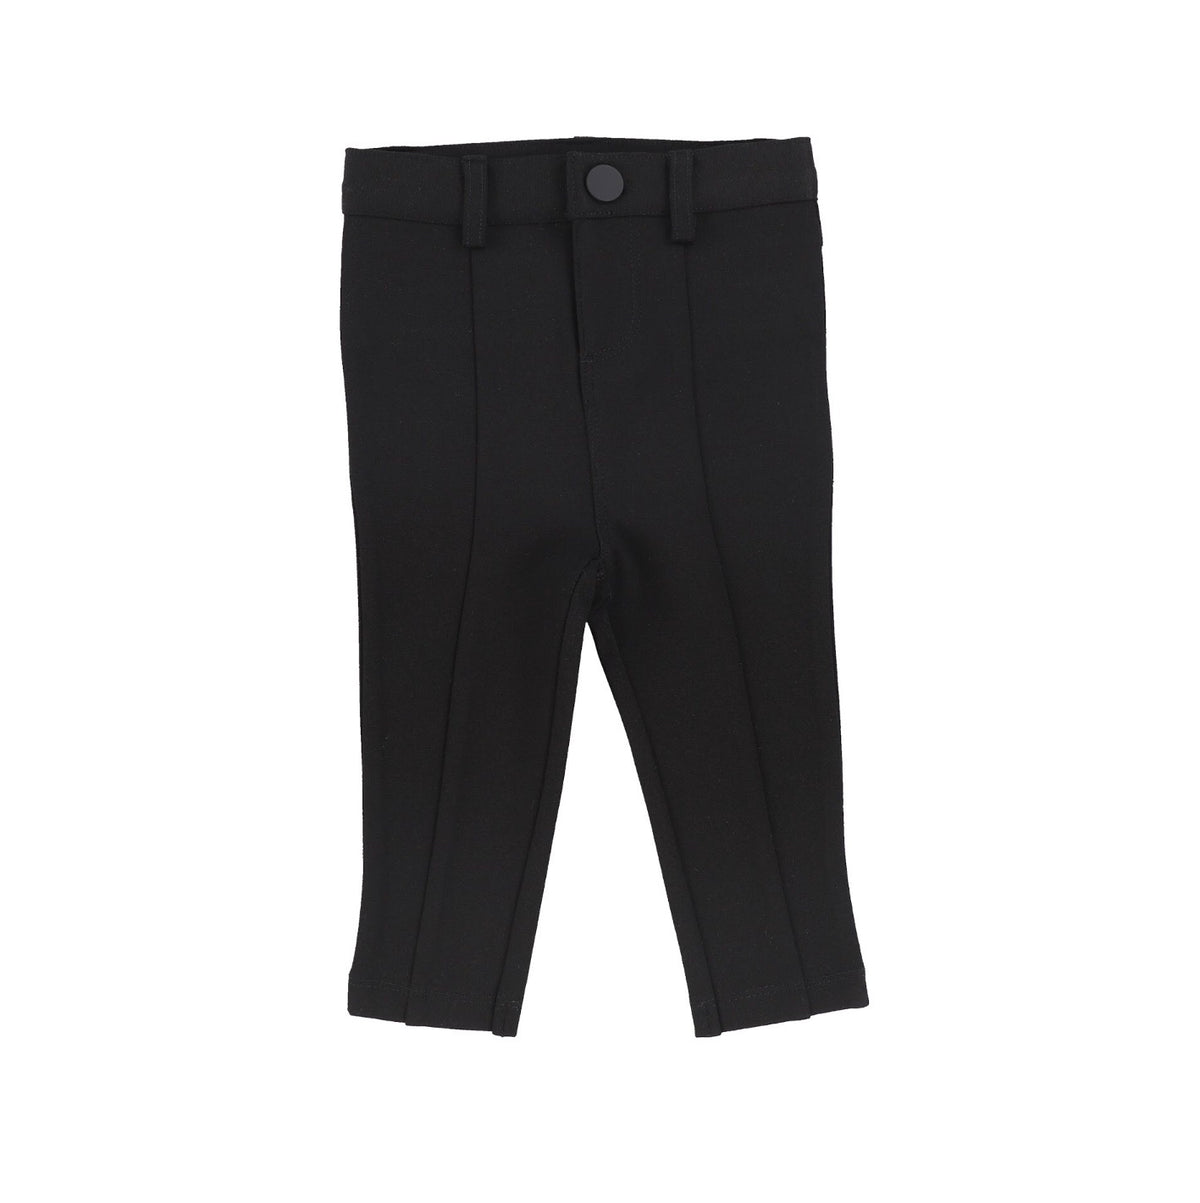 Black Knit Pants